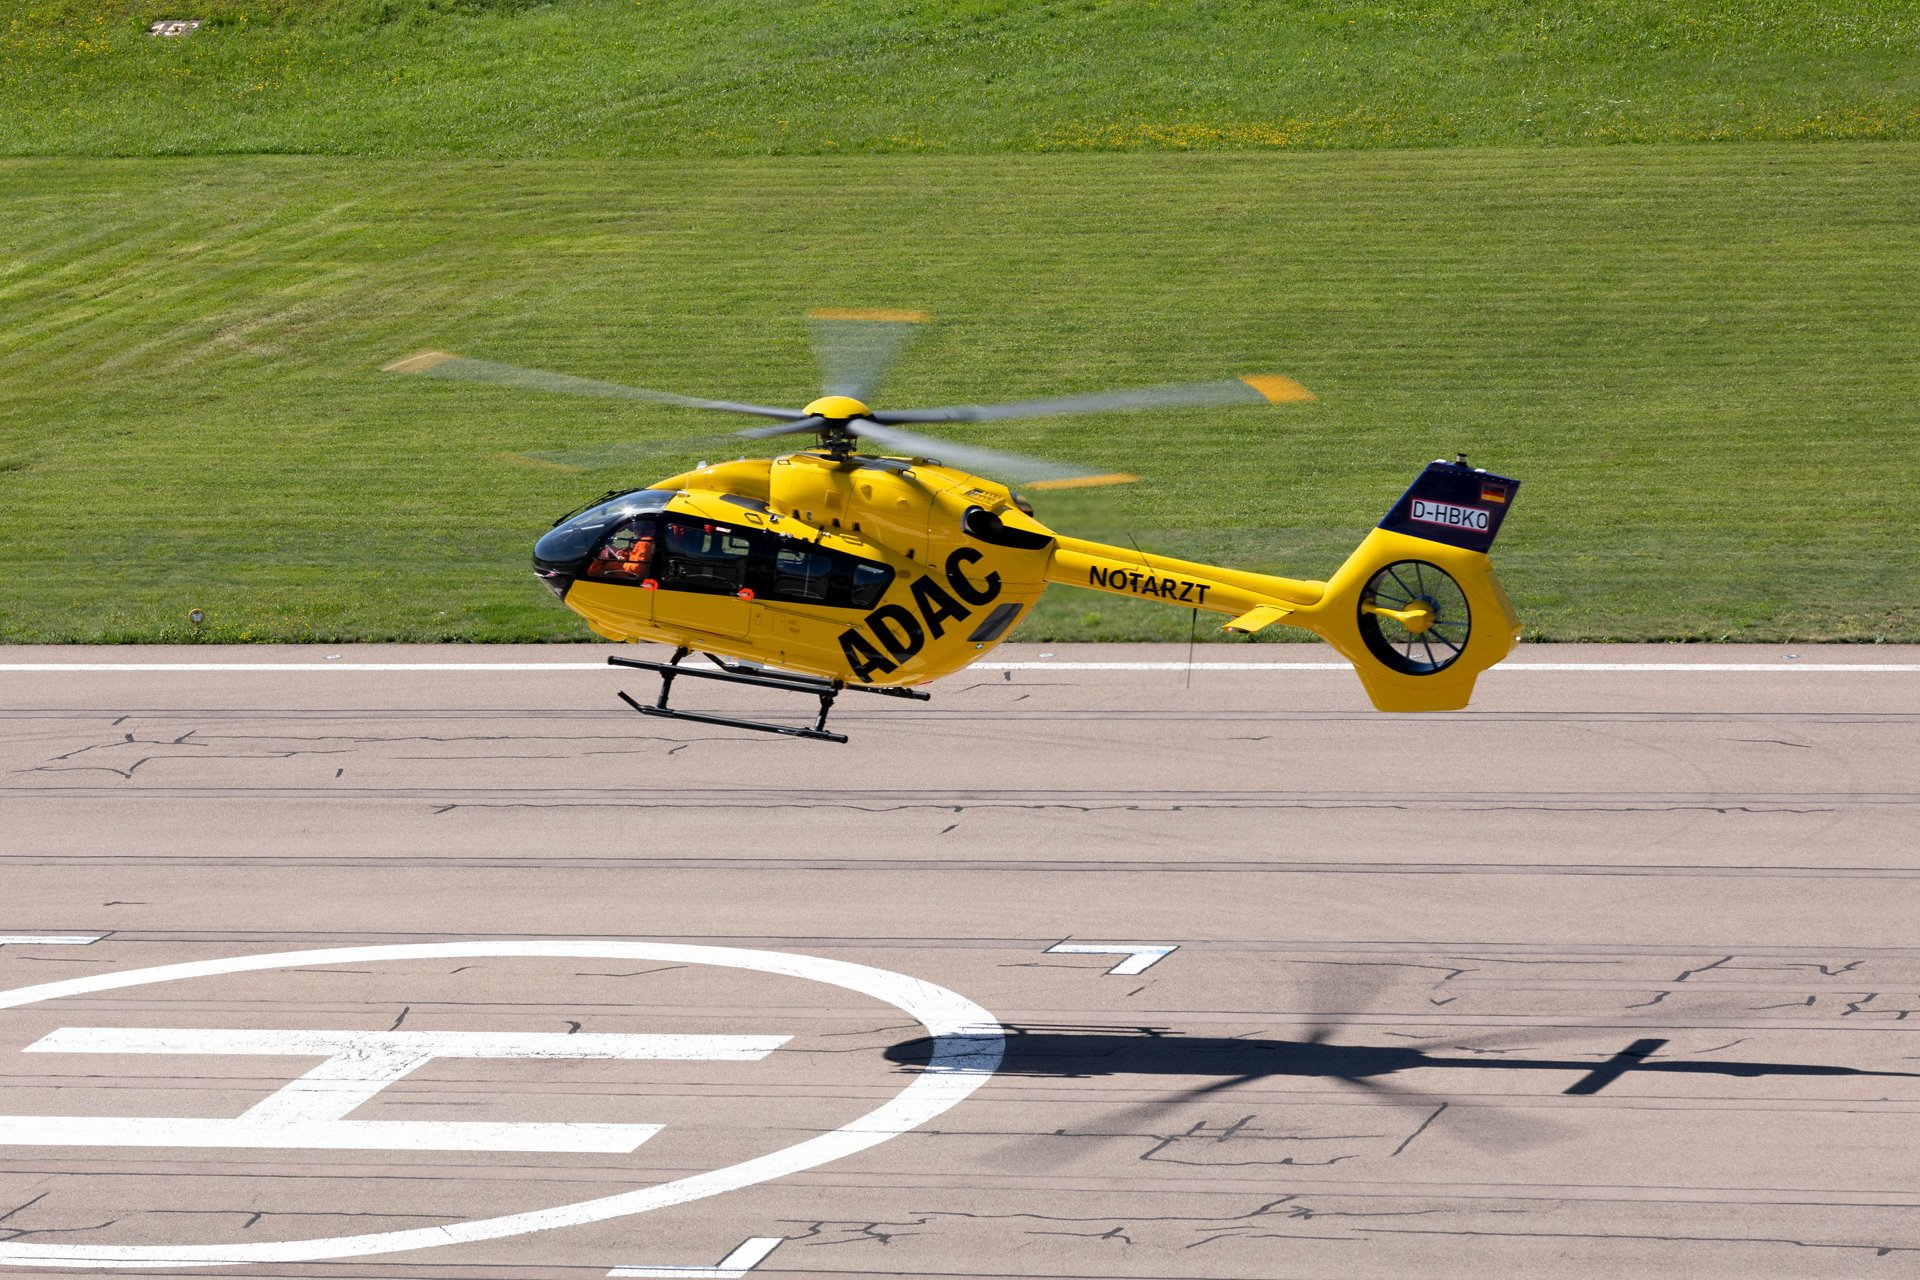 ADAC Luftrettung, one of Europe's biggest Helicopter Emergency Medical Services (HEMS) operators, has taken delivery of its first two five-bladed H145s.